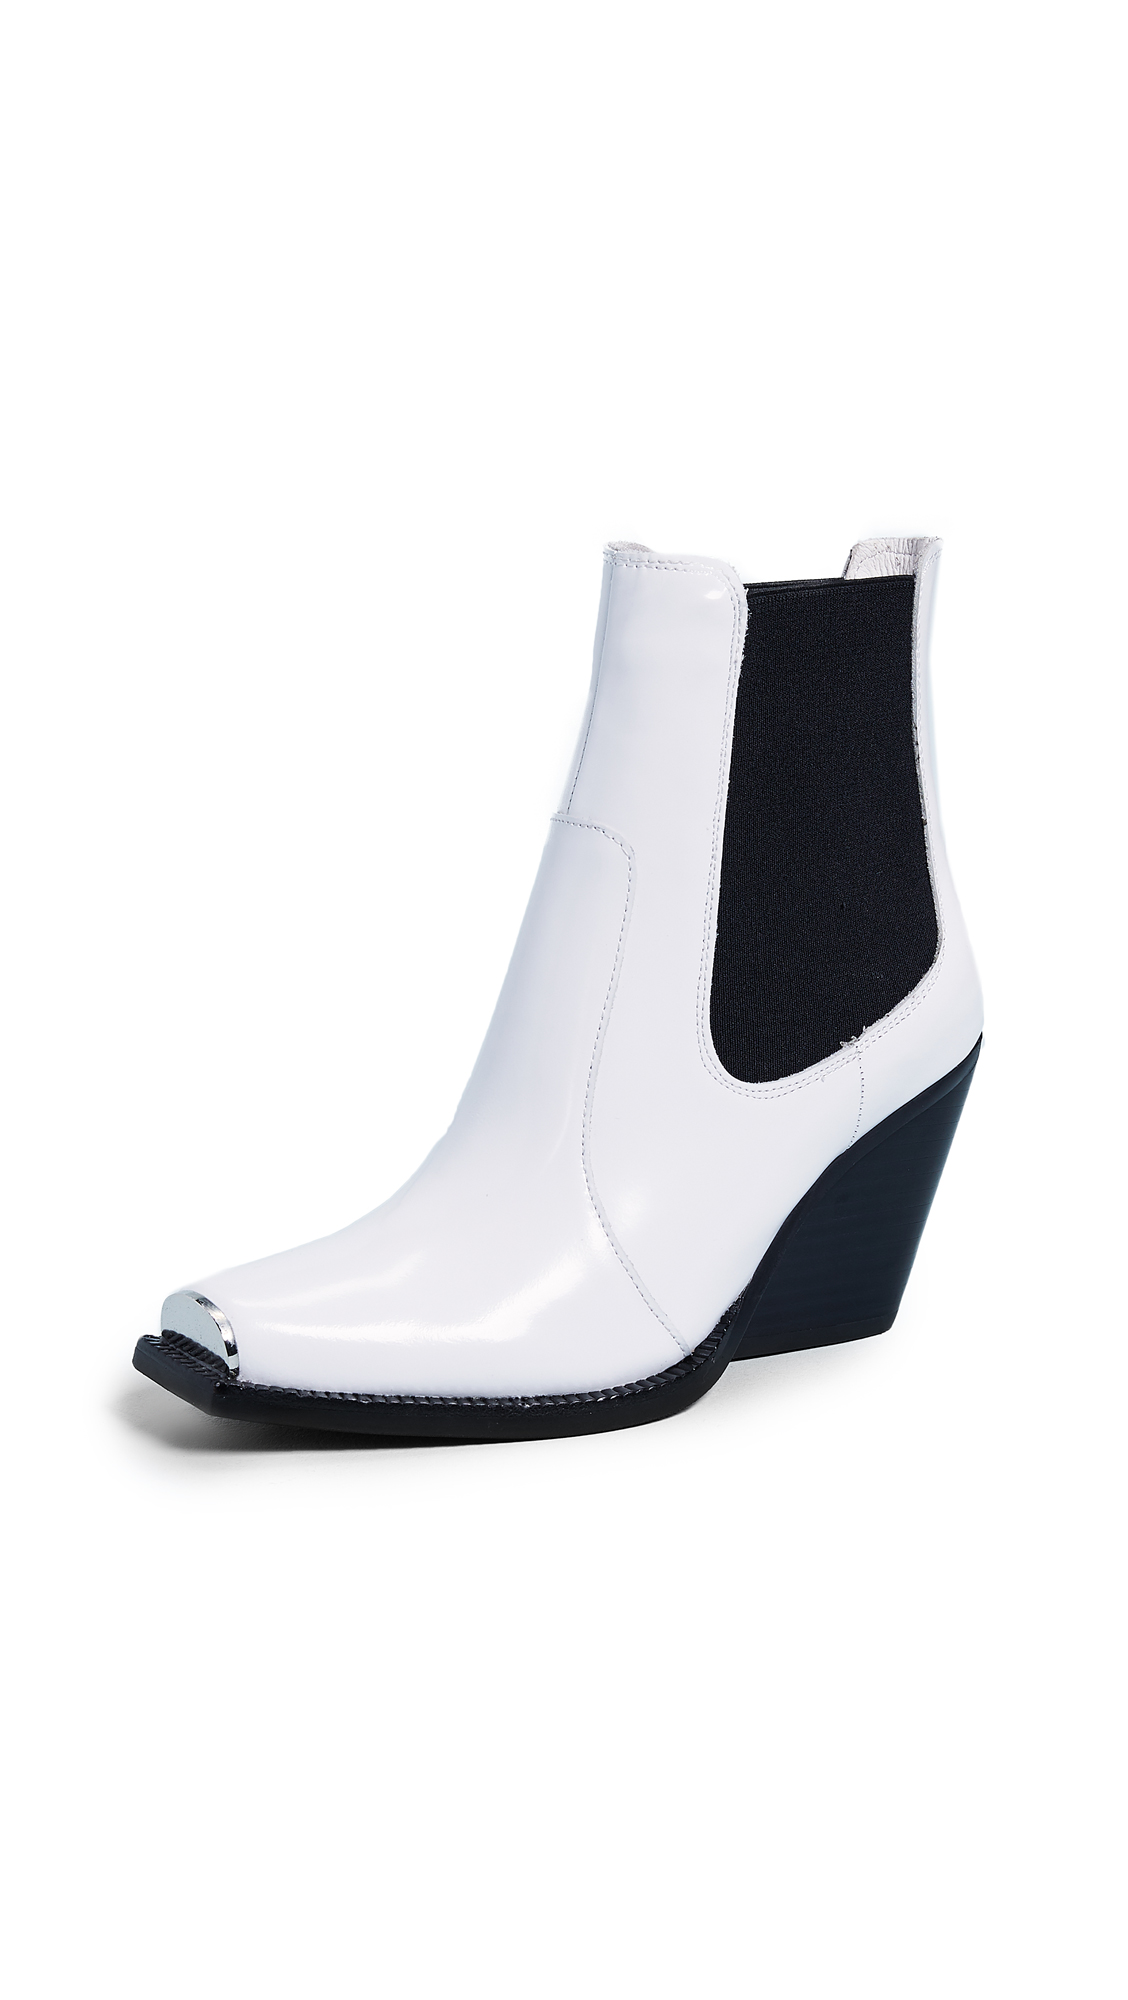 Jeffrey Campbell Underkill Boots - White